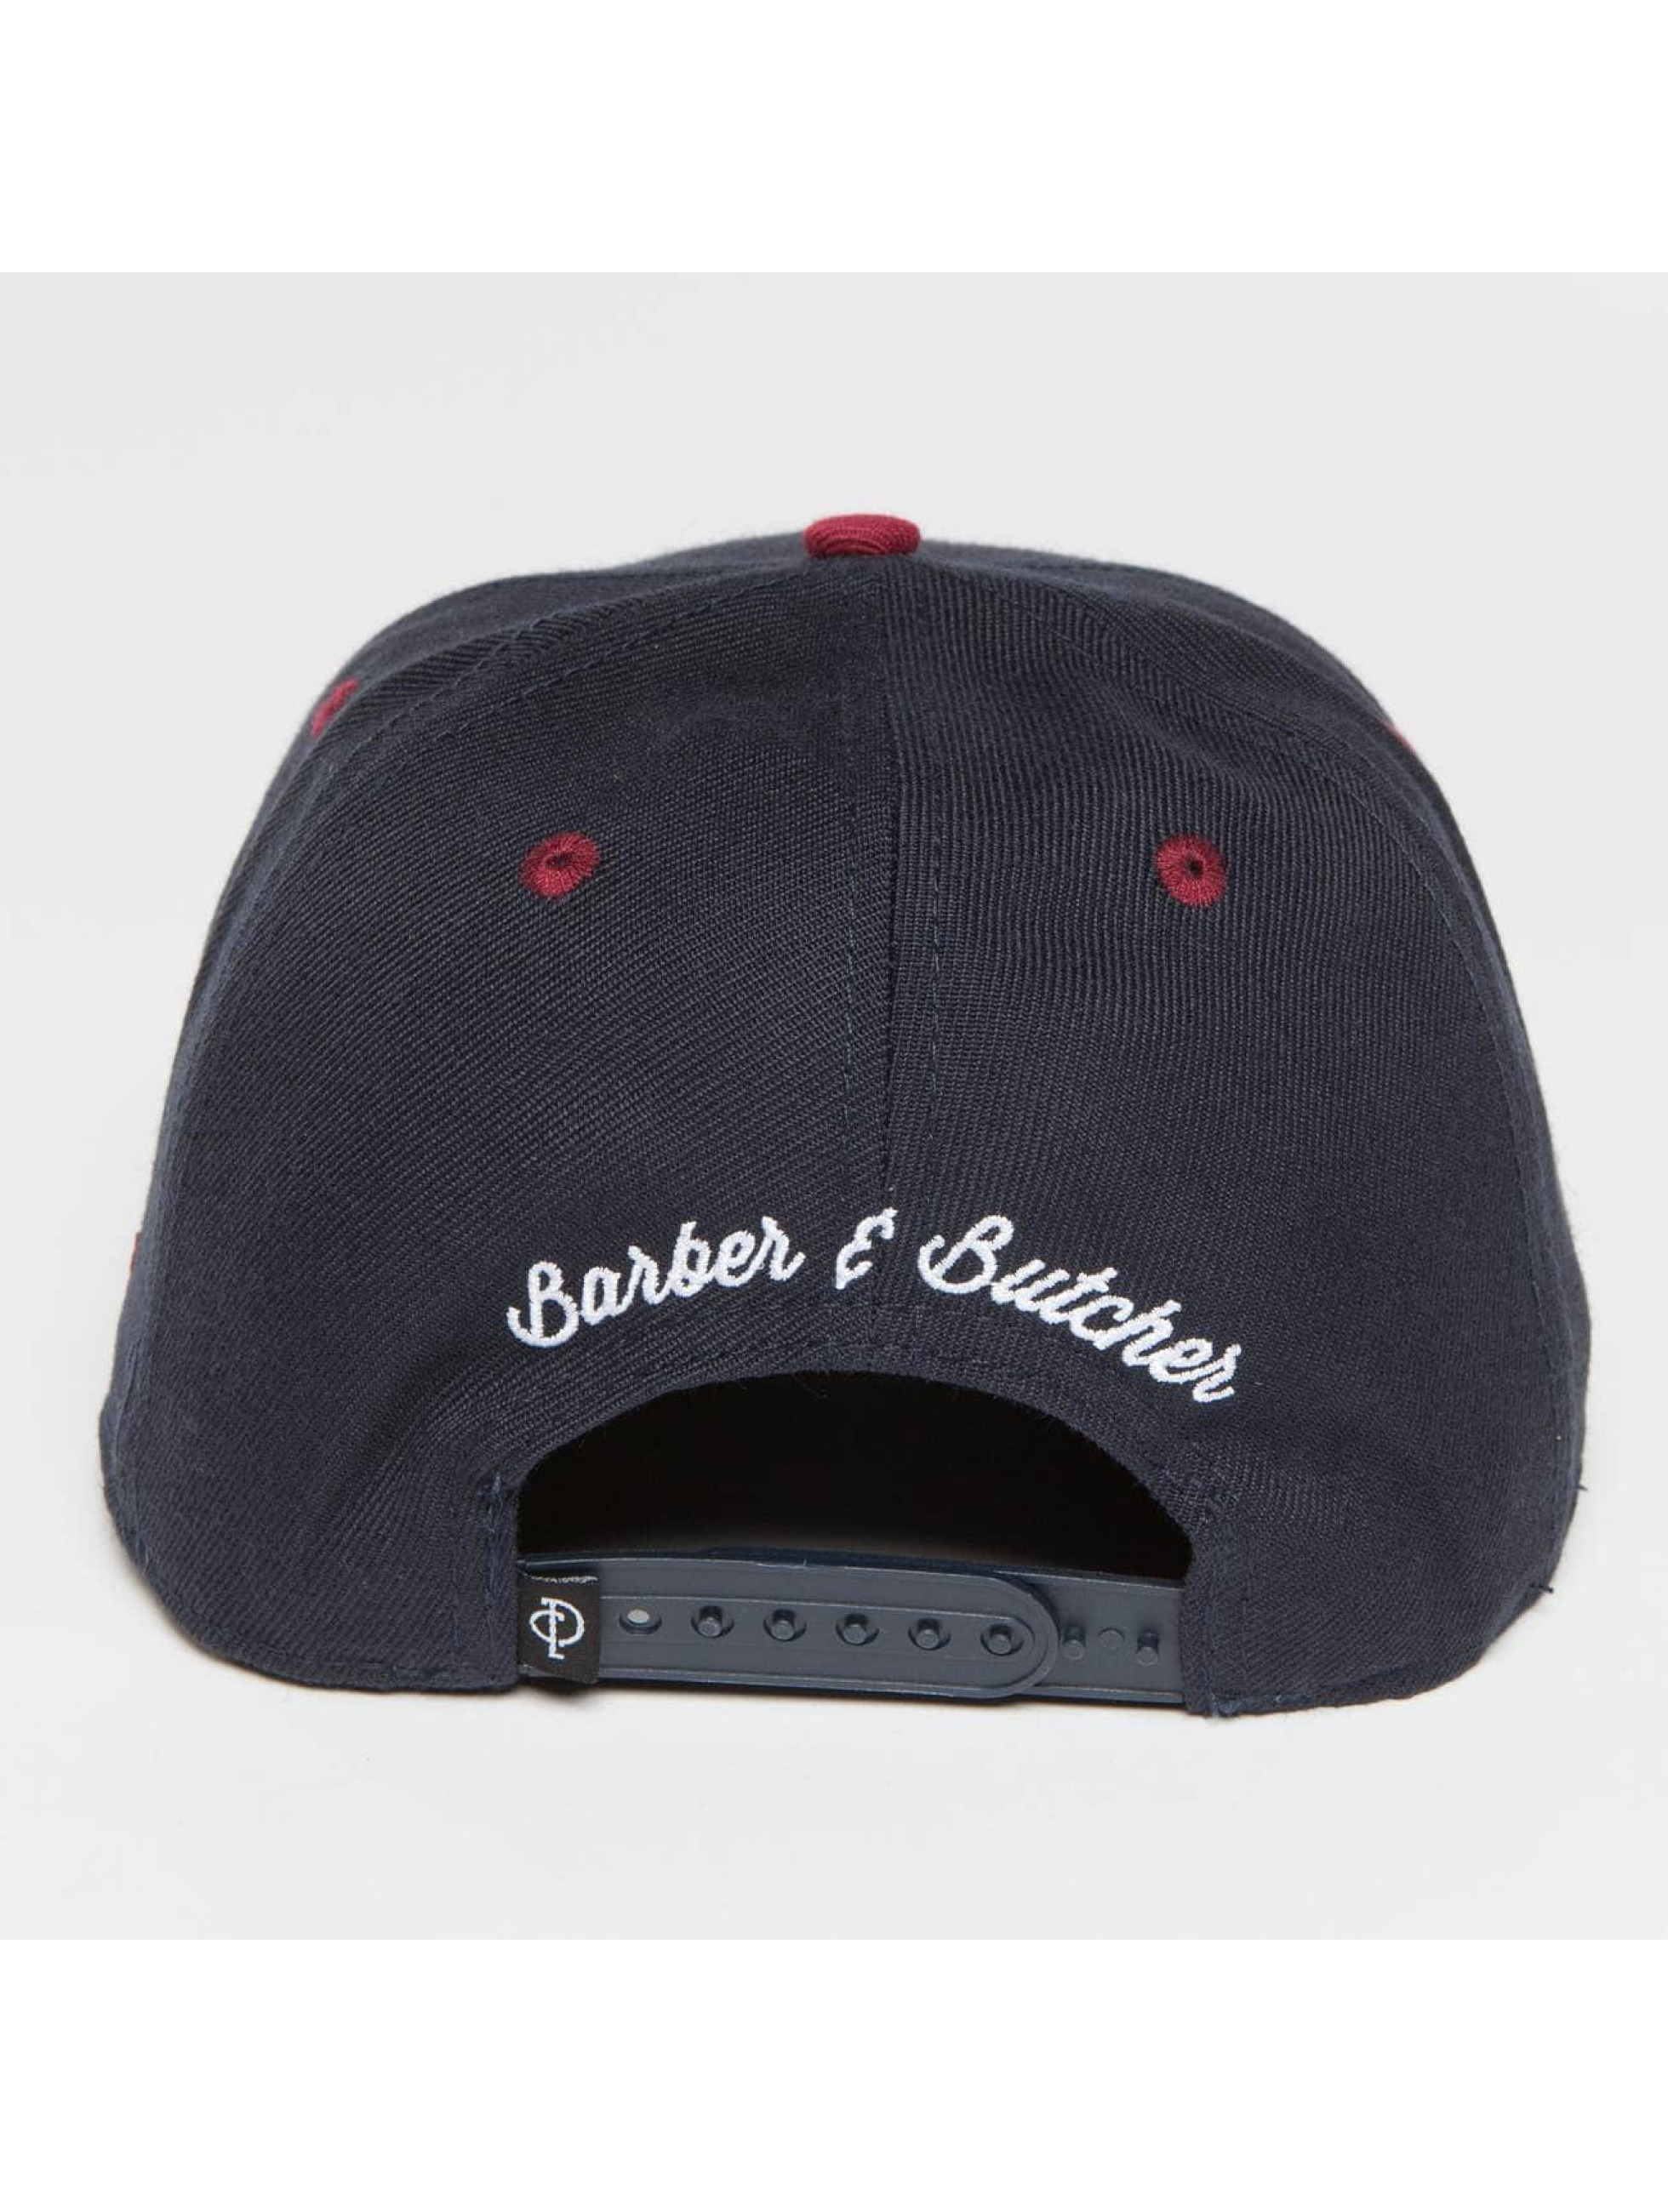 Distorted People Casquette Snapback & Strapback Barber & Butcher bleu